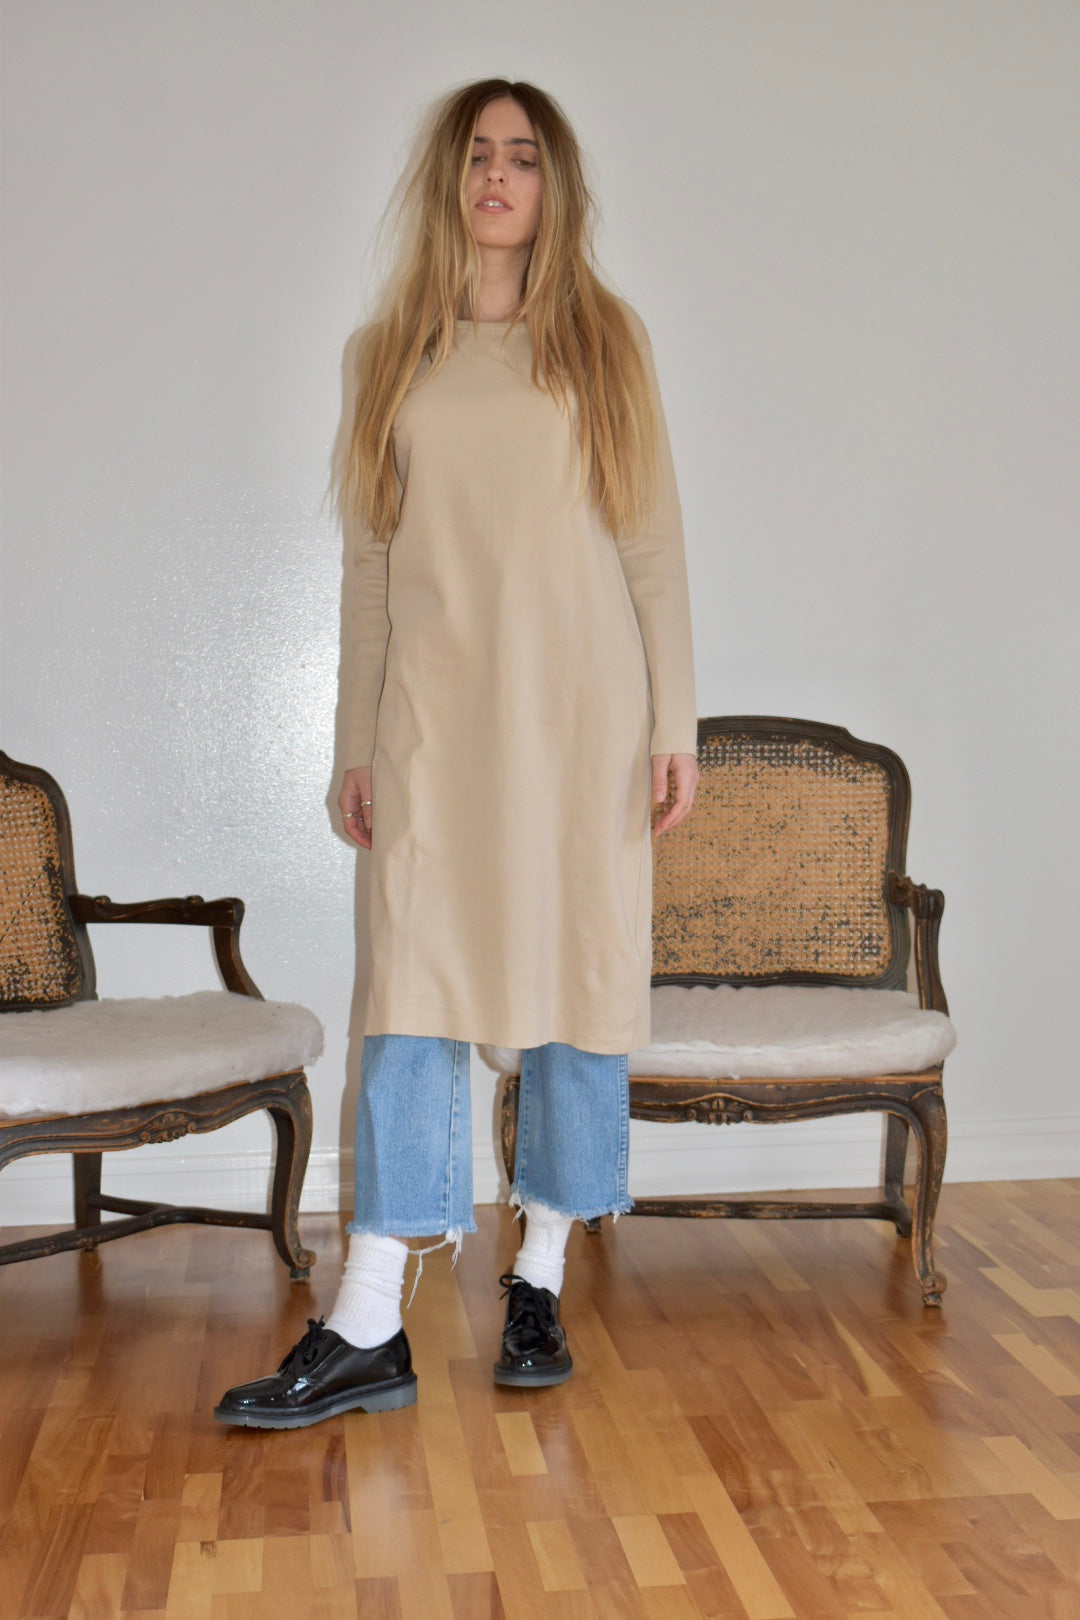 Dare (On Elbows), Long Sleeved Dress